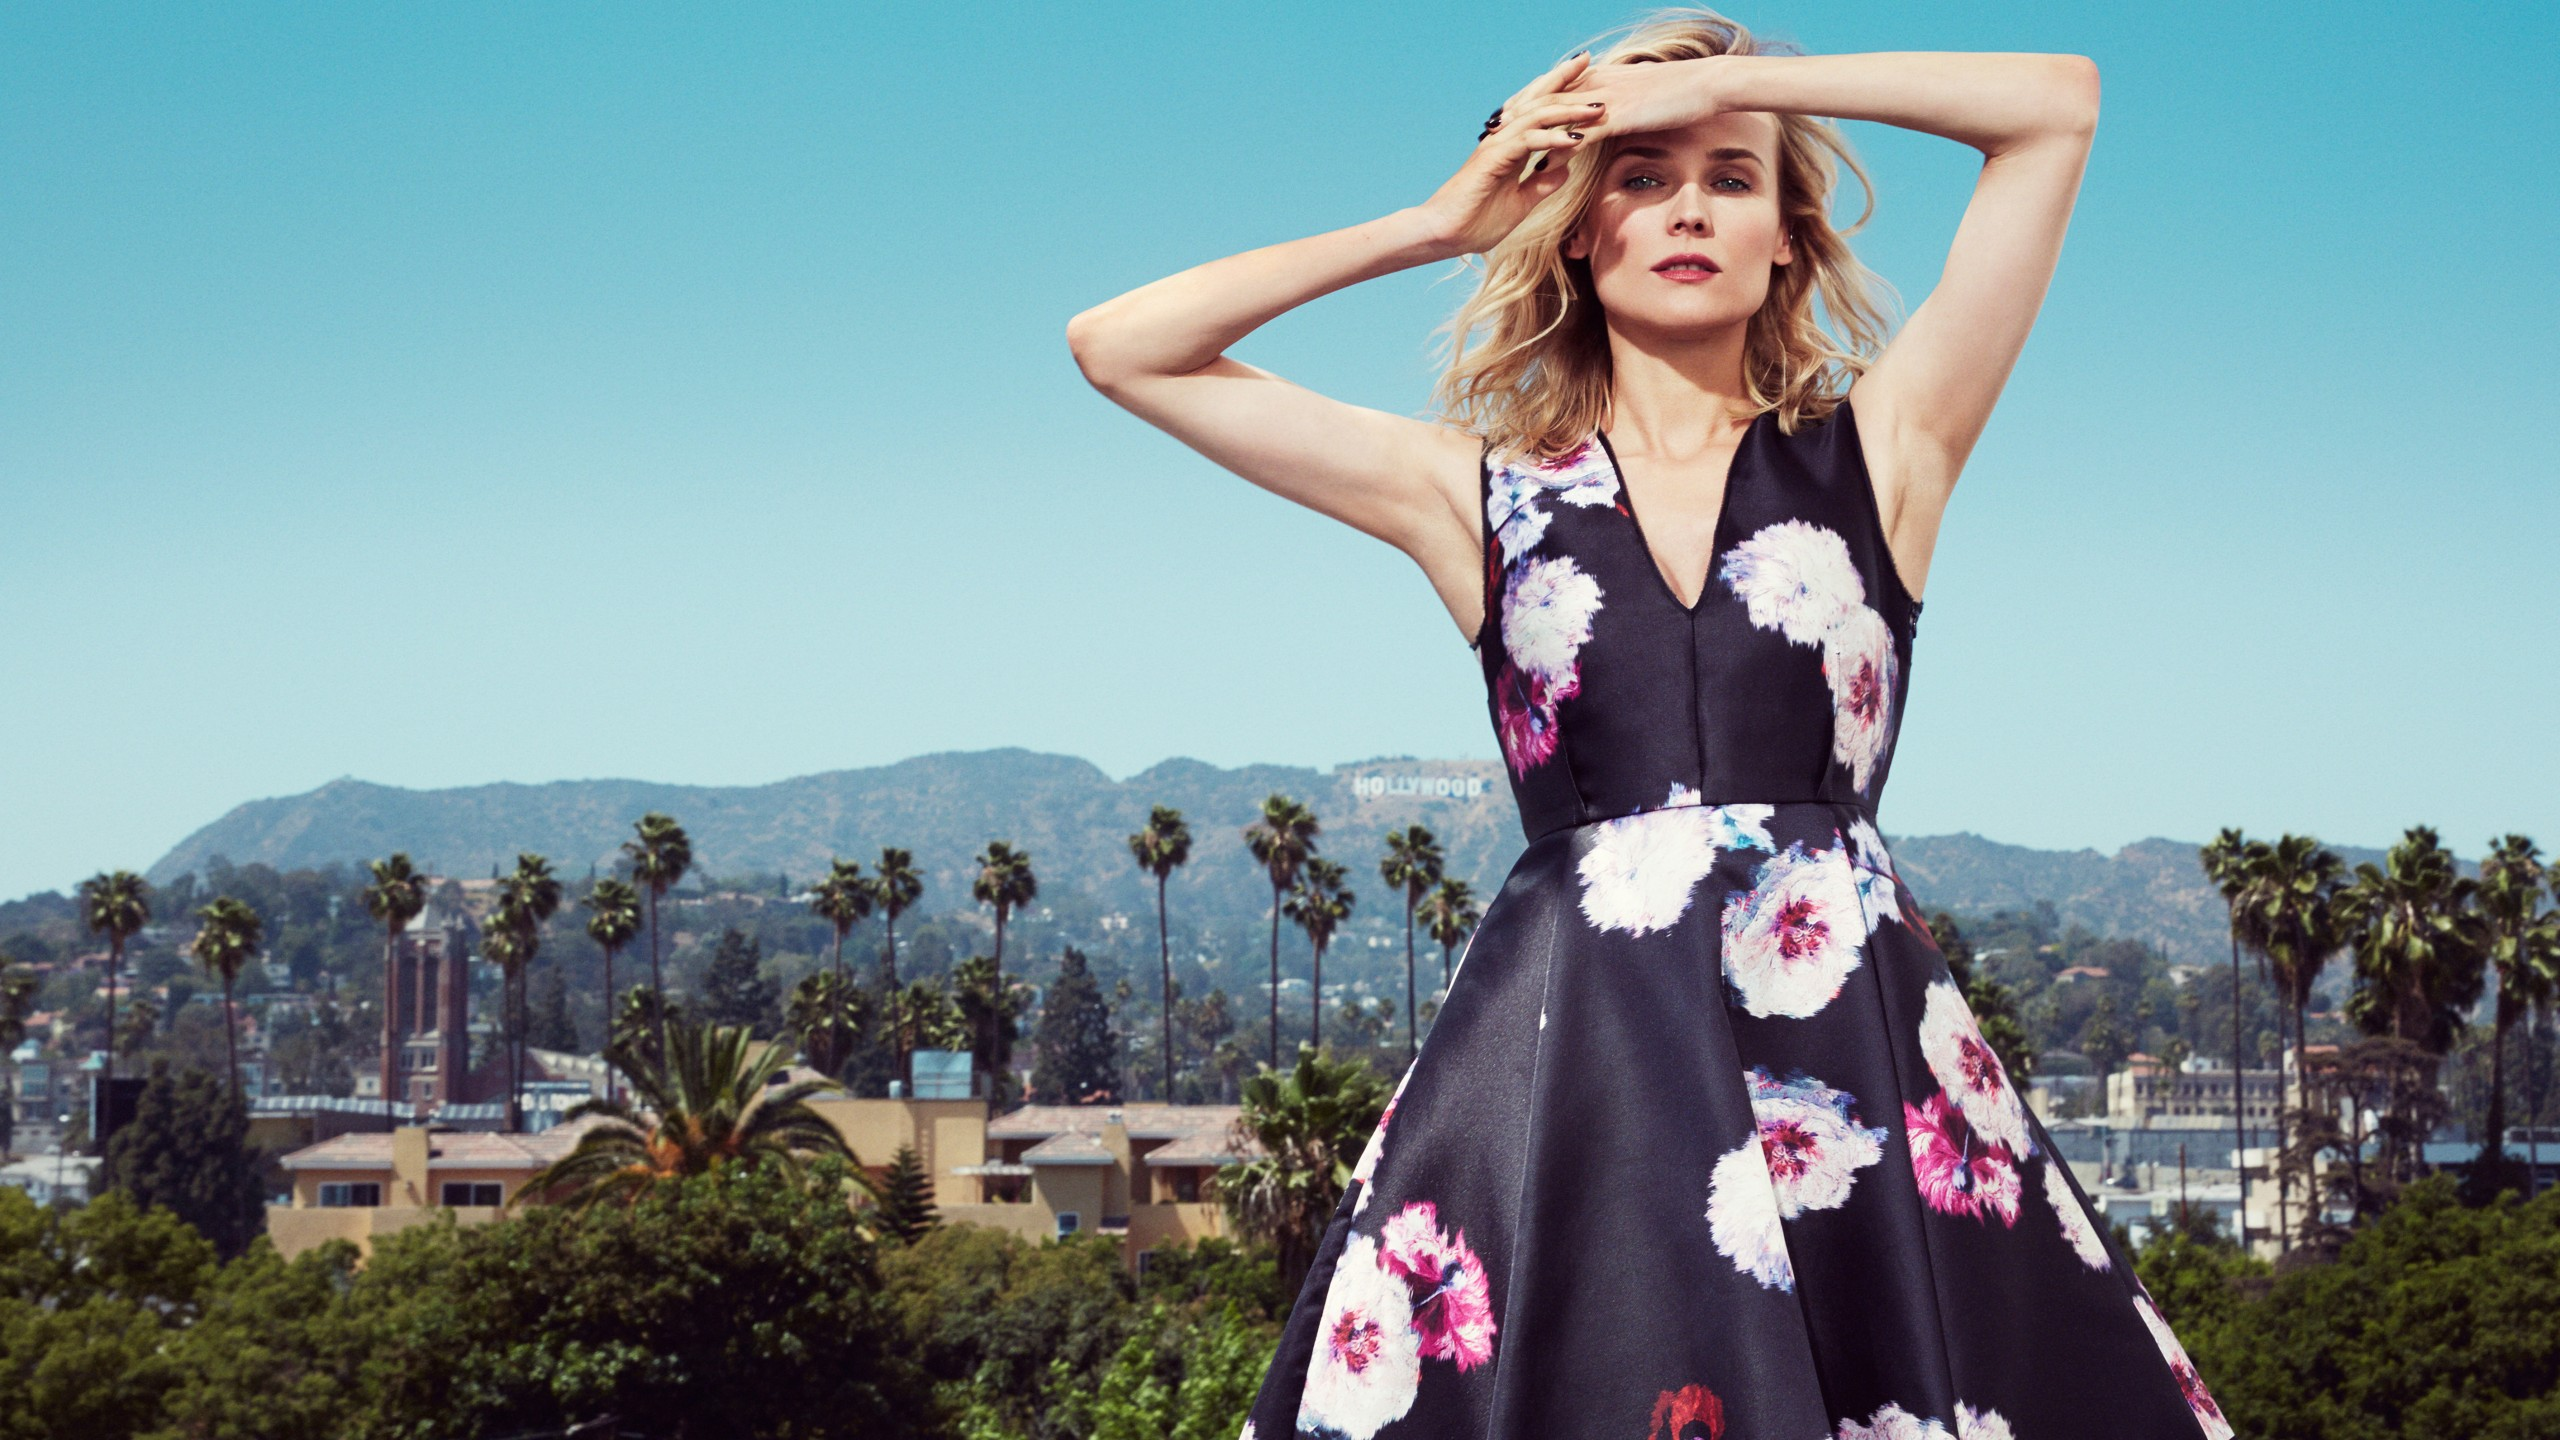 diane kruger dress wallpaper background 63349